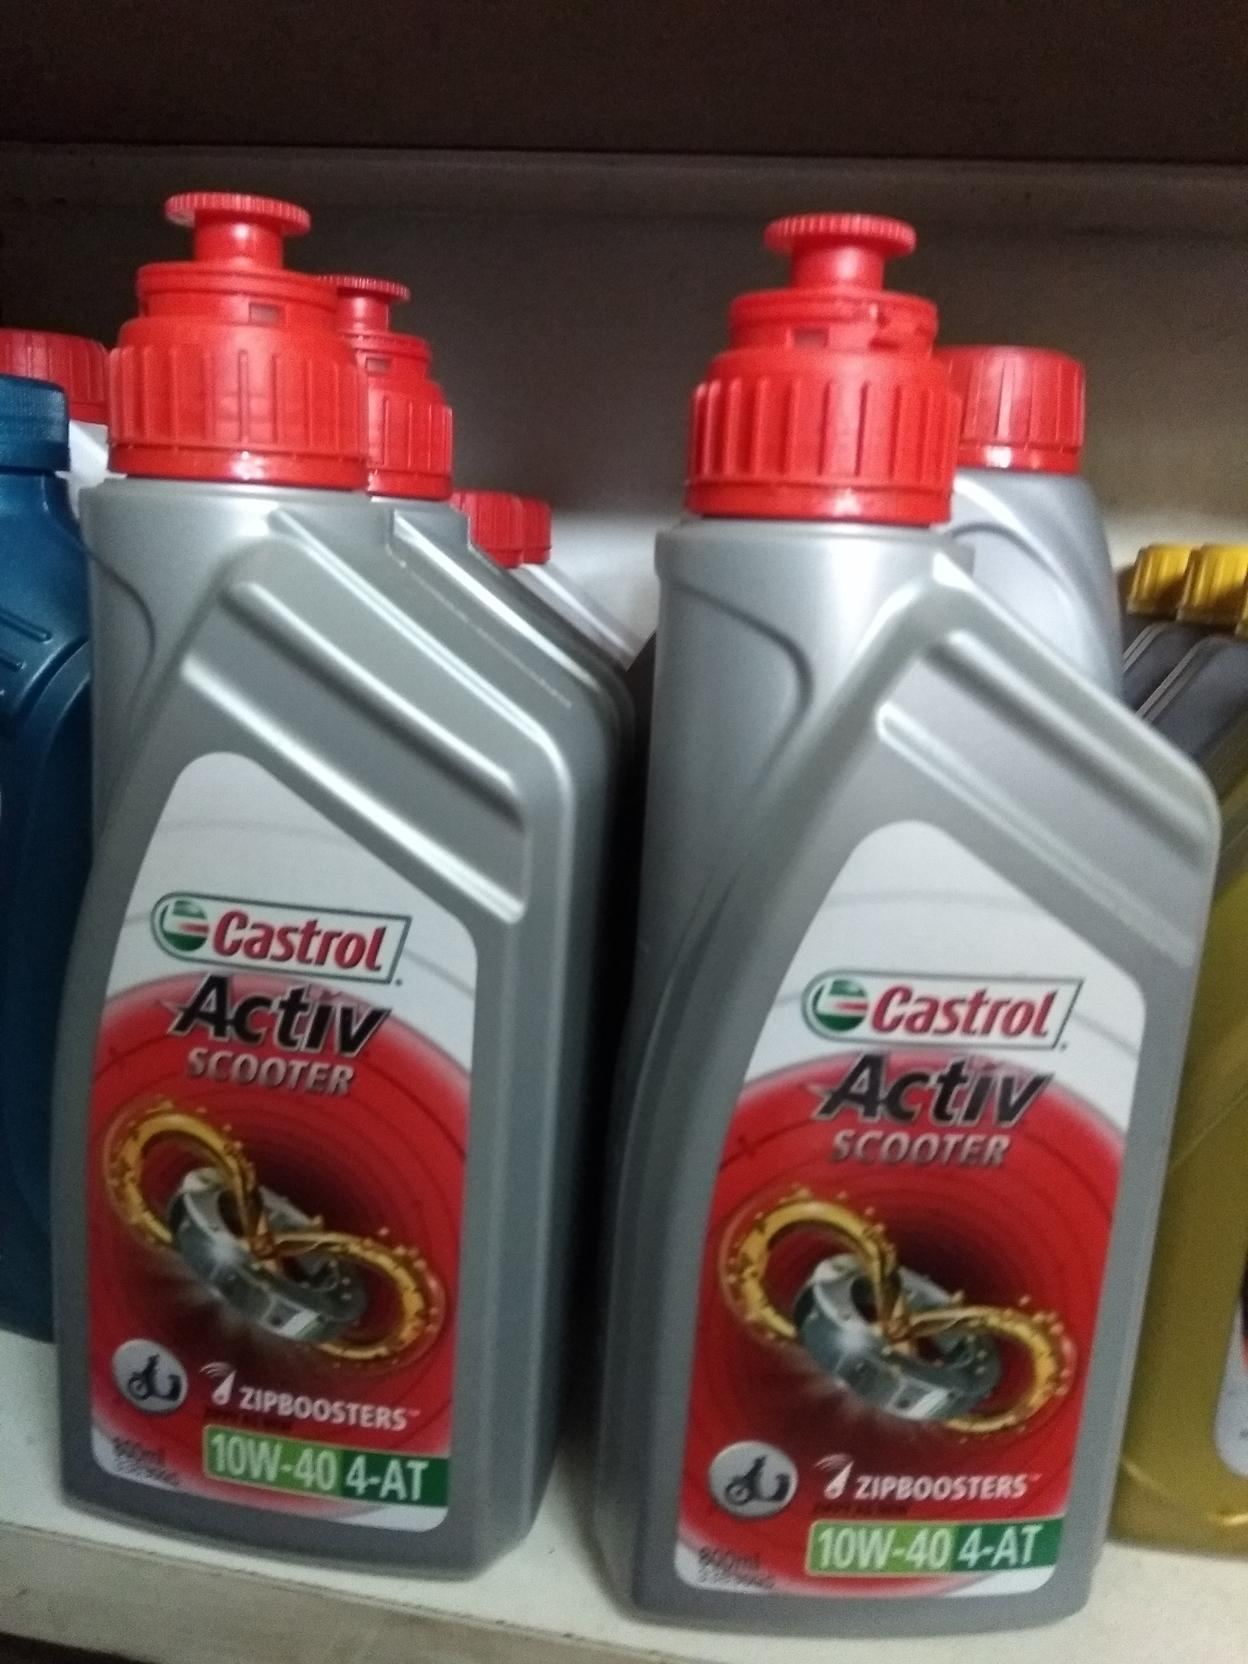 Motorbike Engine Oil Castrol Activ Matic 20w 40 12x08l I 08 Liter Power1 Scooter 4t 10w 4 At With Zipboosters 800ml